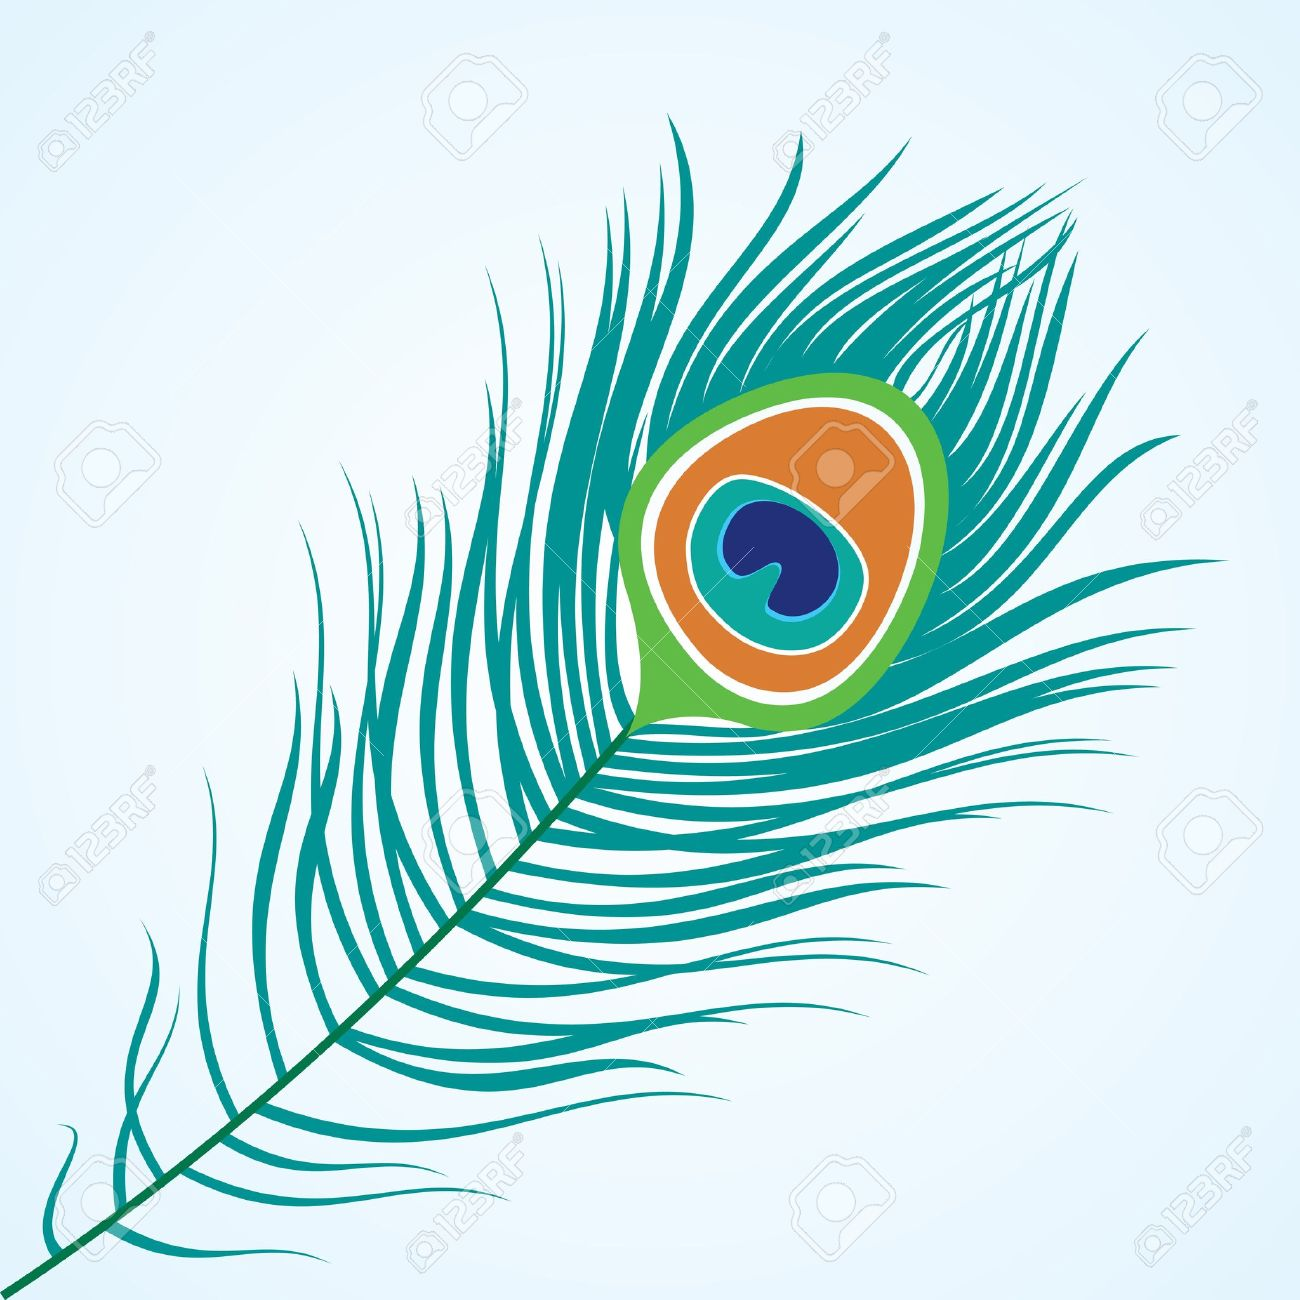 Peacock feathers background drawing